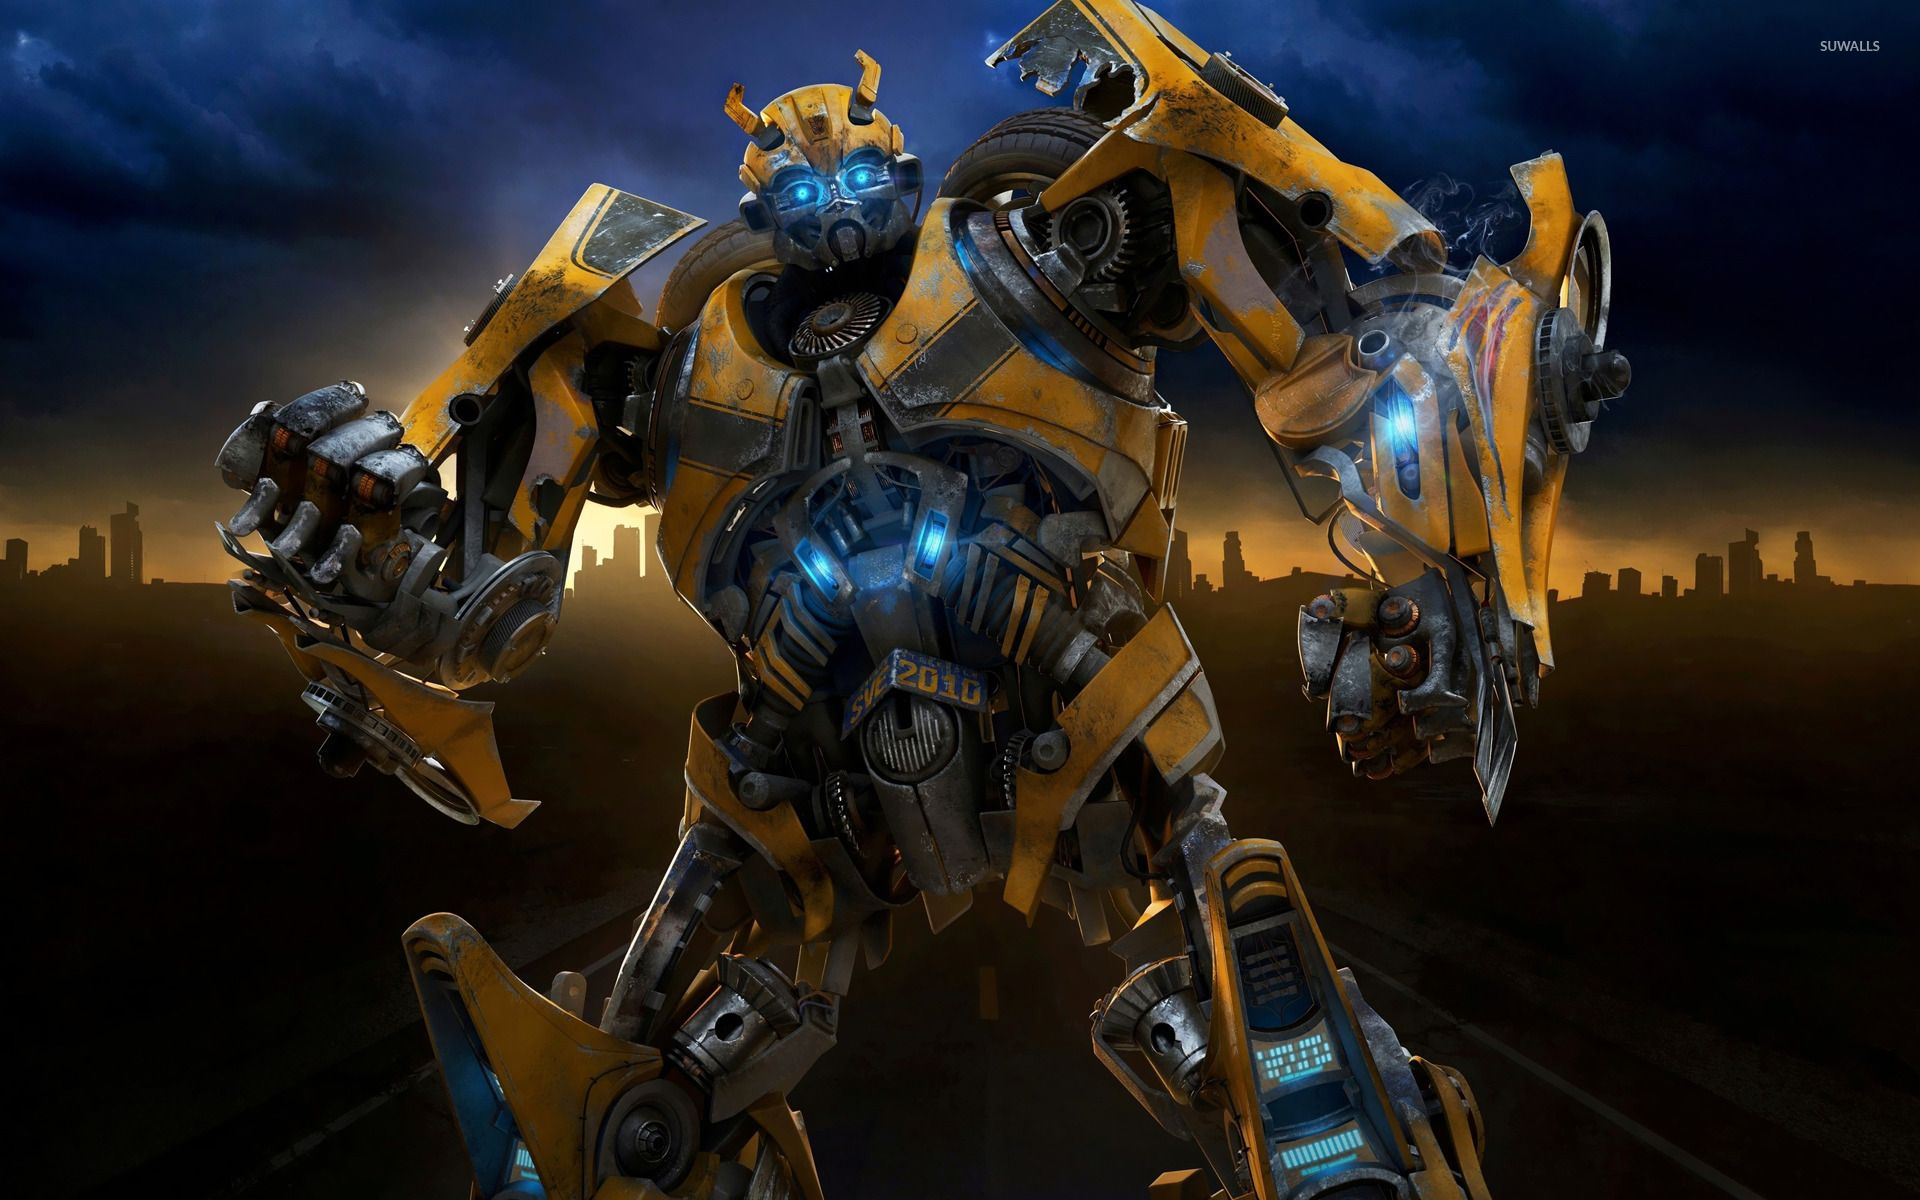 Transformers Images Transformers Hd Wallpaper And Background Transformers Poster Prints Transformers Movie Bumblebee